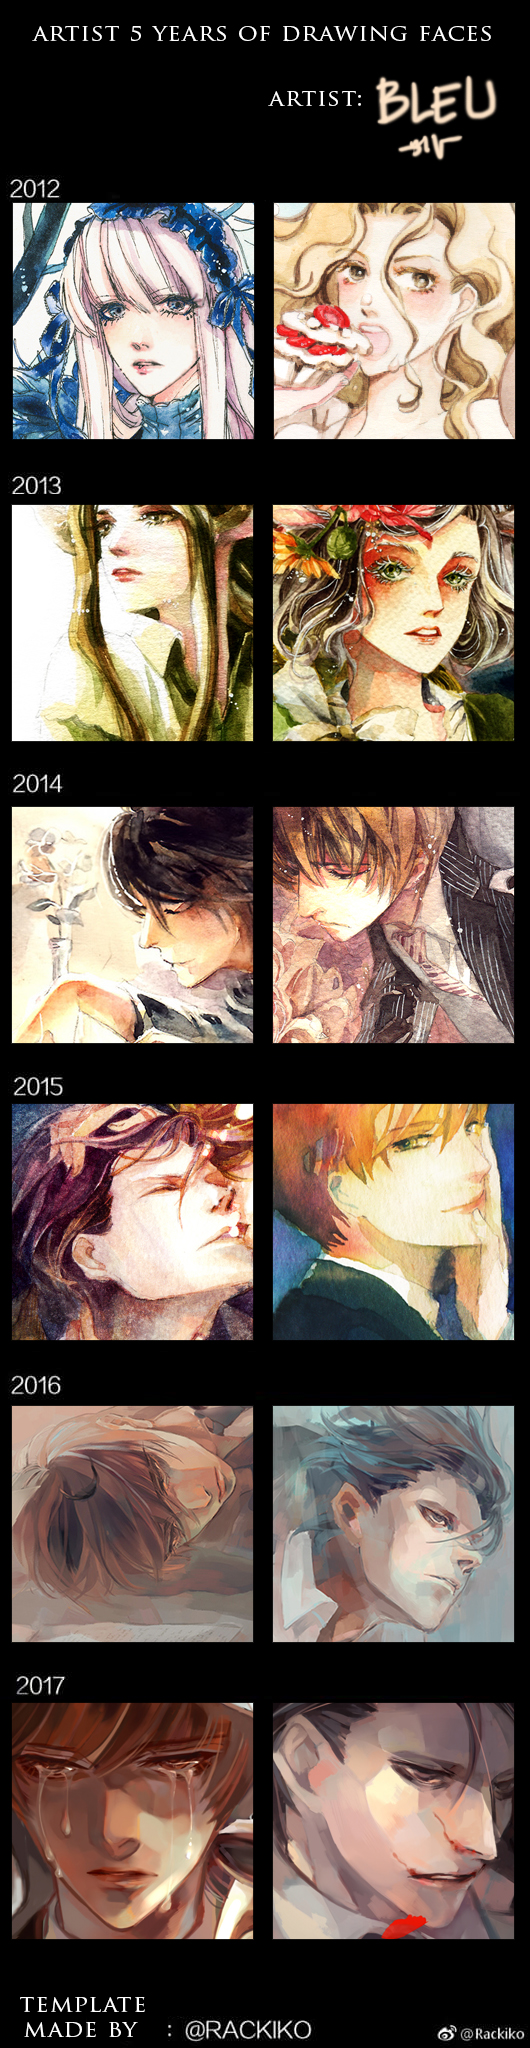 5 years of drawing faces by Charlotte-Exotique